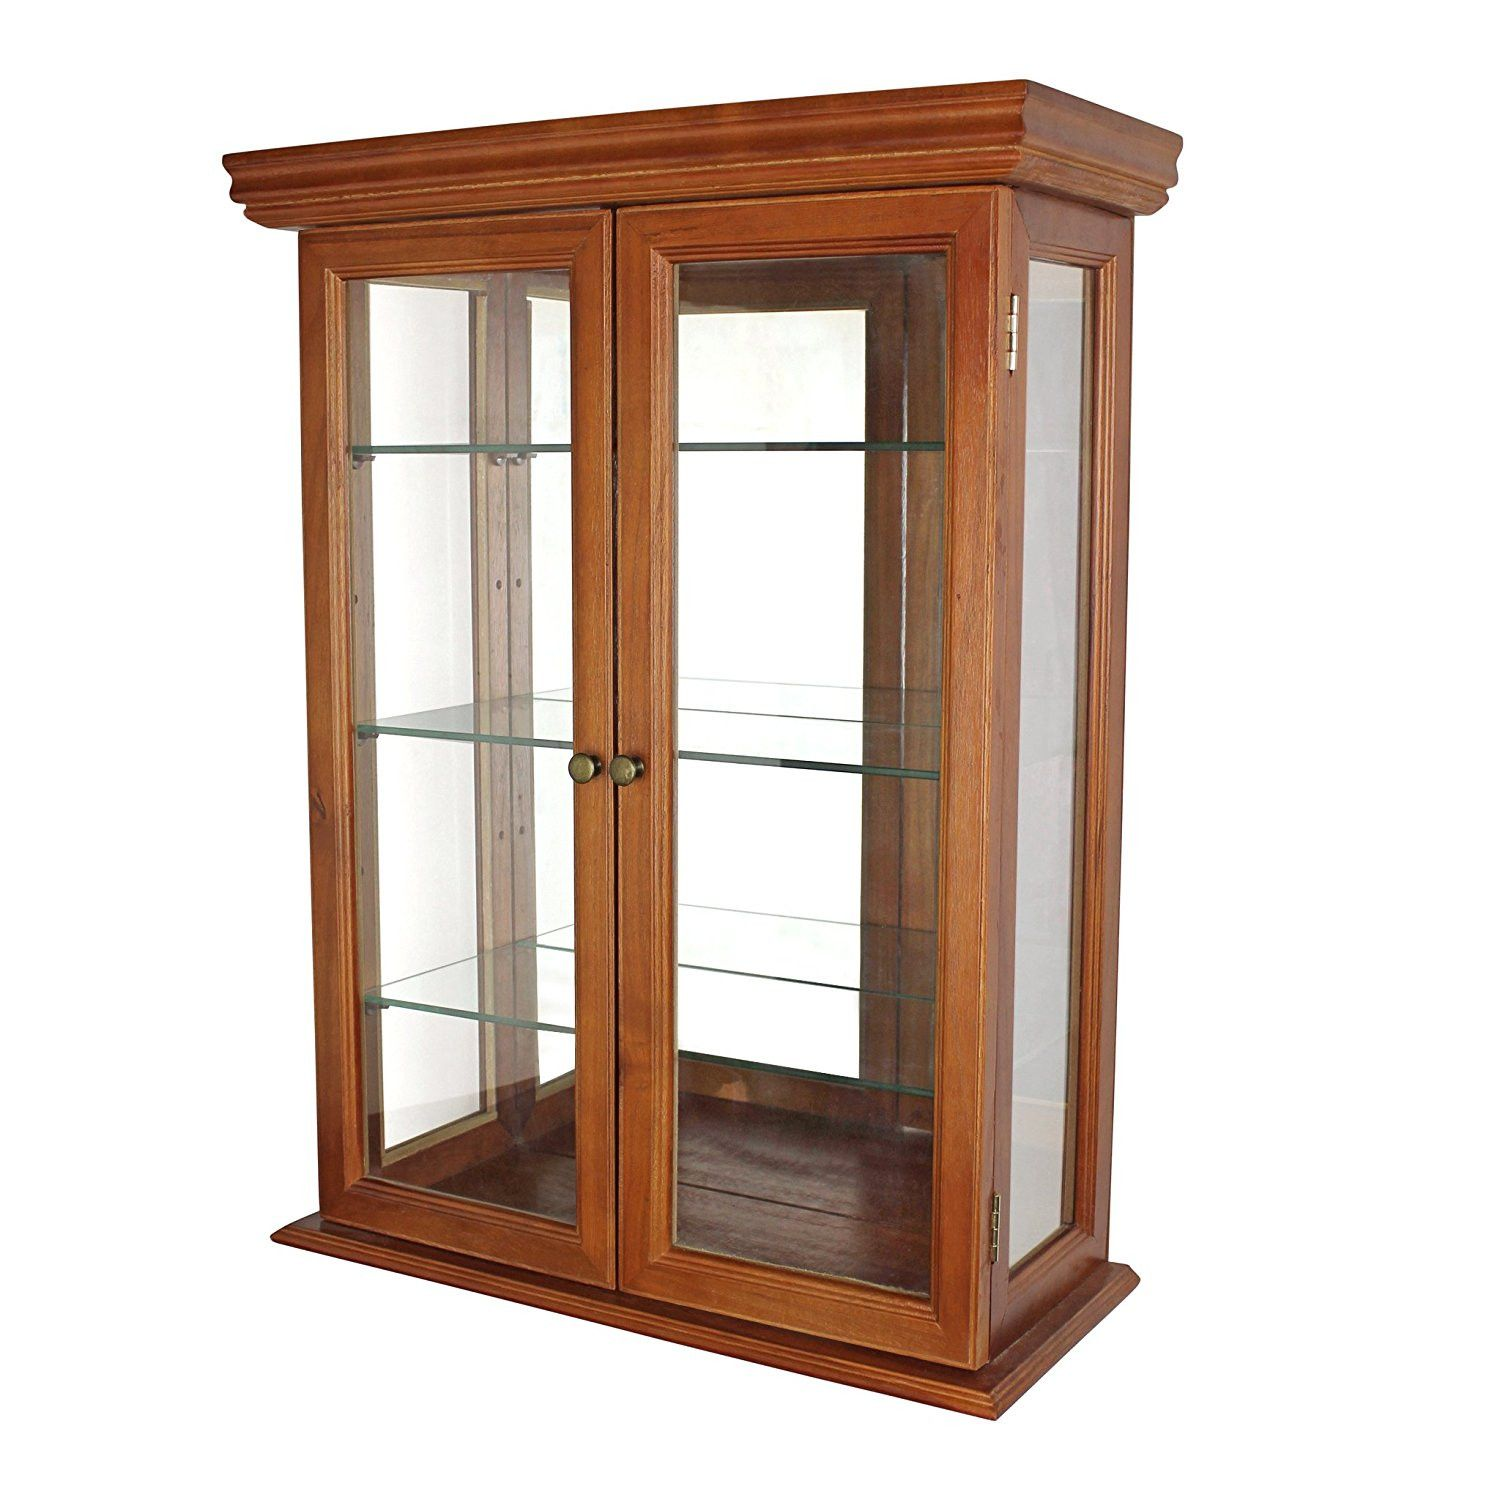 20 Small Wall Display Cabinets With Glass Doors Small Kitchen Island Ideas With Seating Check More At Glass Curio Cabinets Wall Curio Cabinet Curio Cabinet